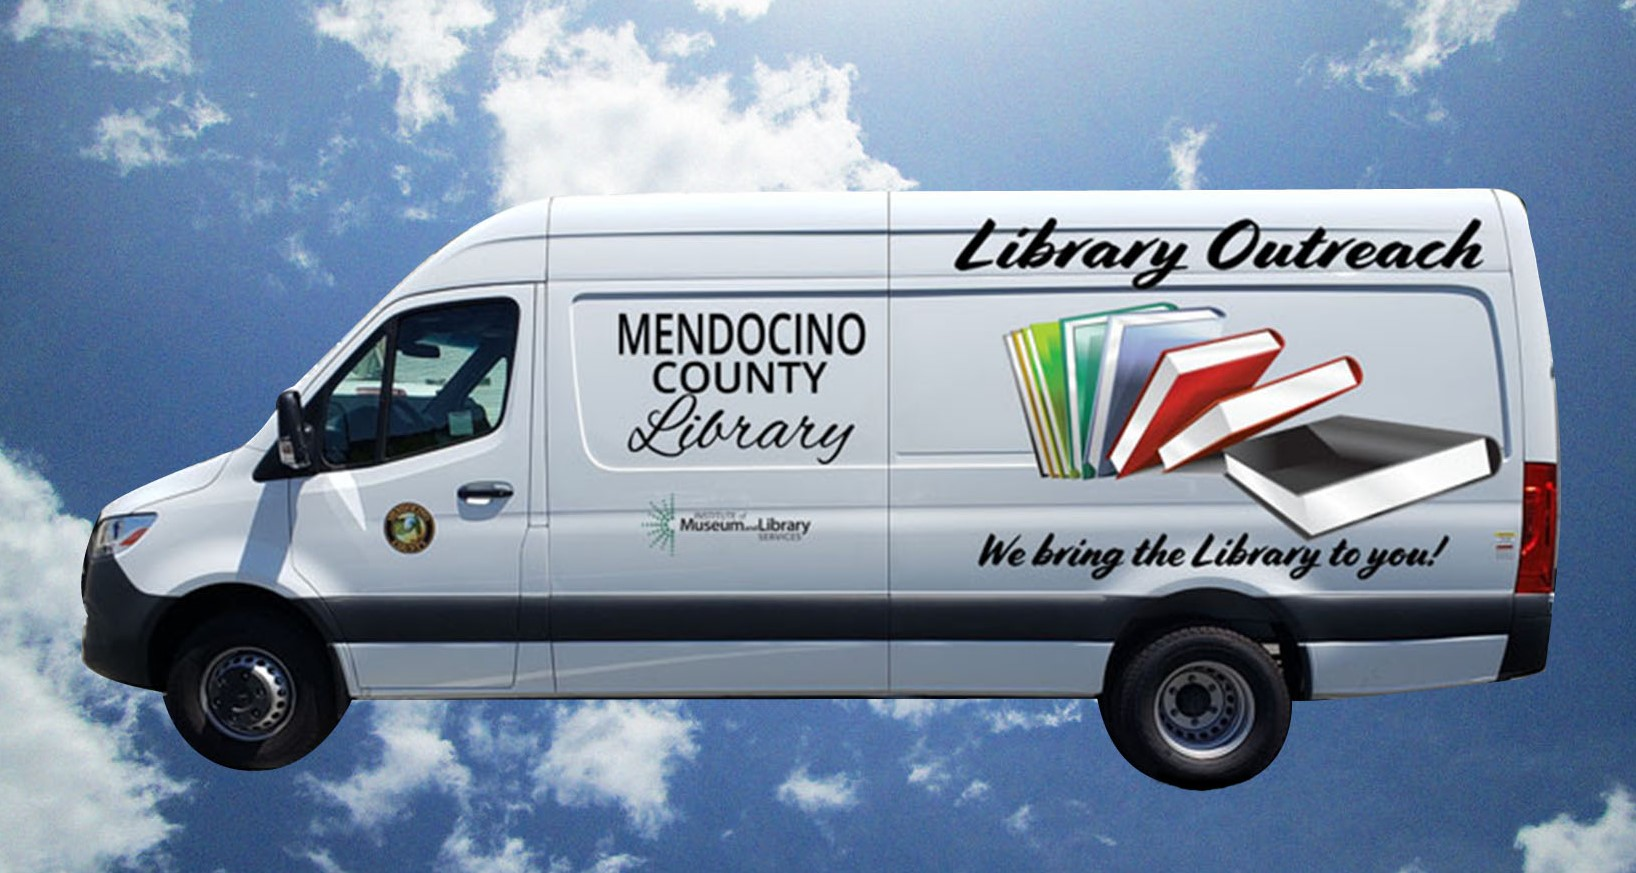 a library van with books on the side floating in the clouds